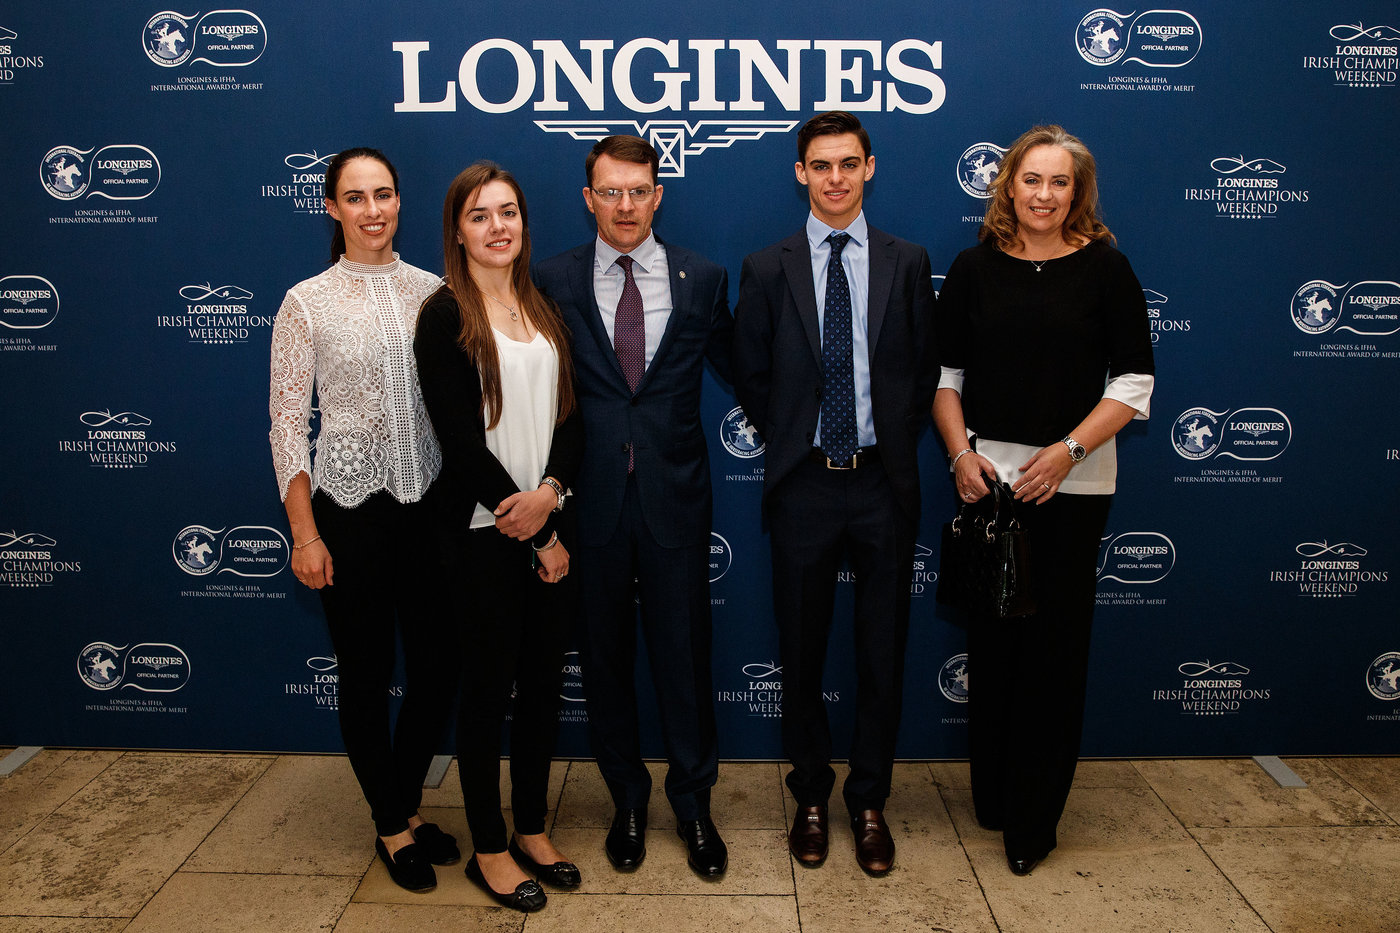 Longines Flat Racing Event: Magnier Family, O'Brien Receive  2018 Longines and IFHA International Award of Merit 8